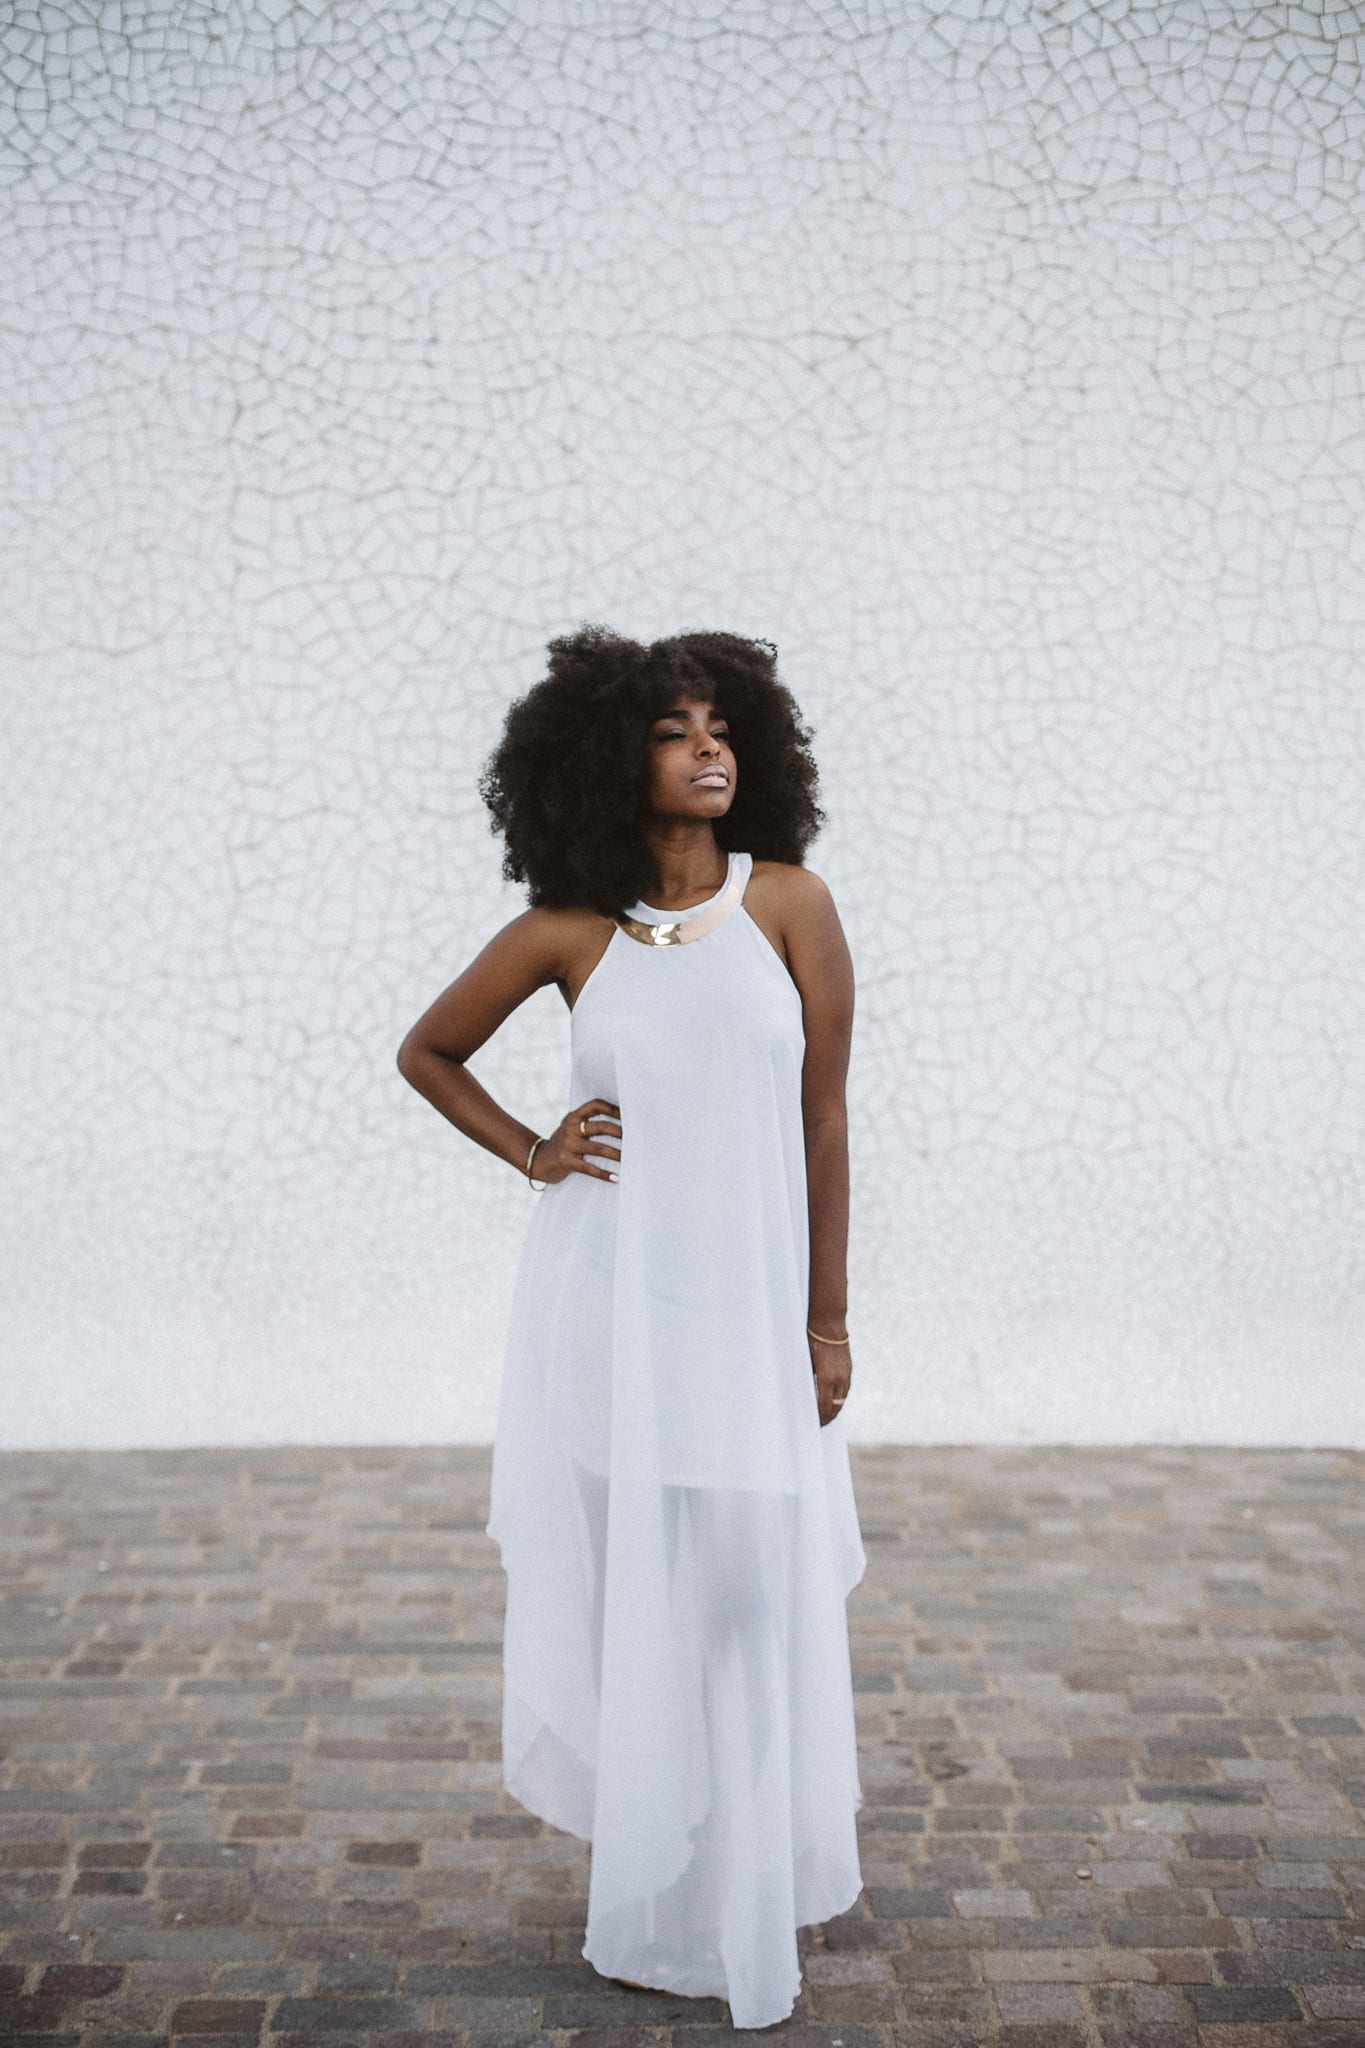 sundial-bridge-california-portrait-photographer-black-afro-queen-birthday-3